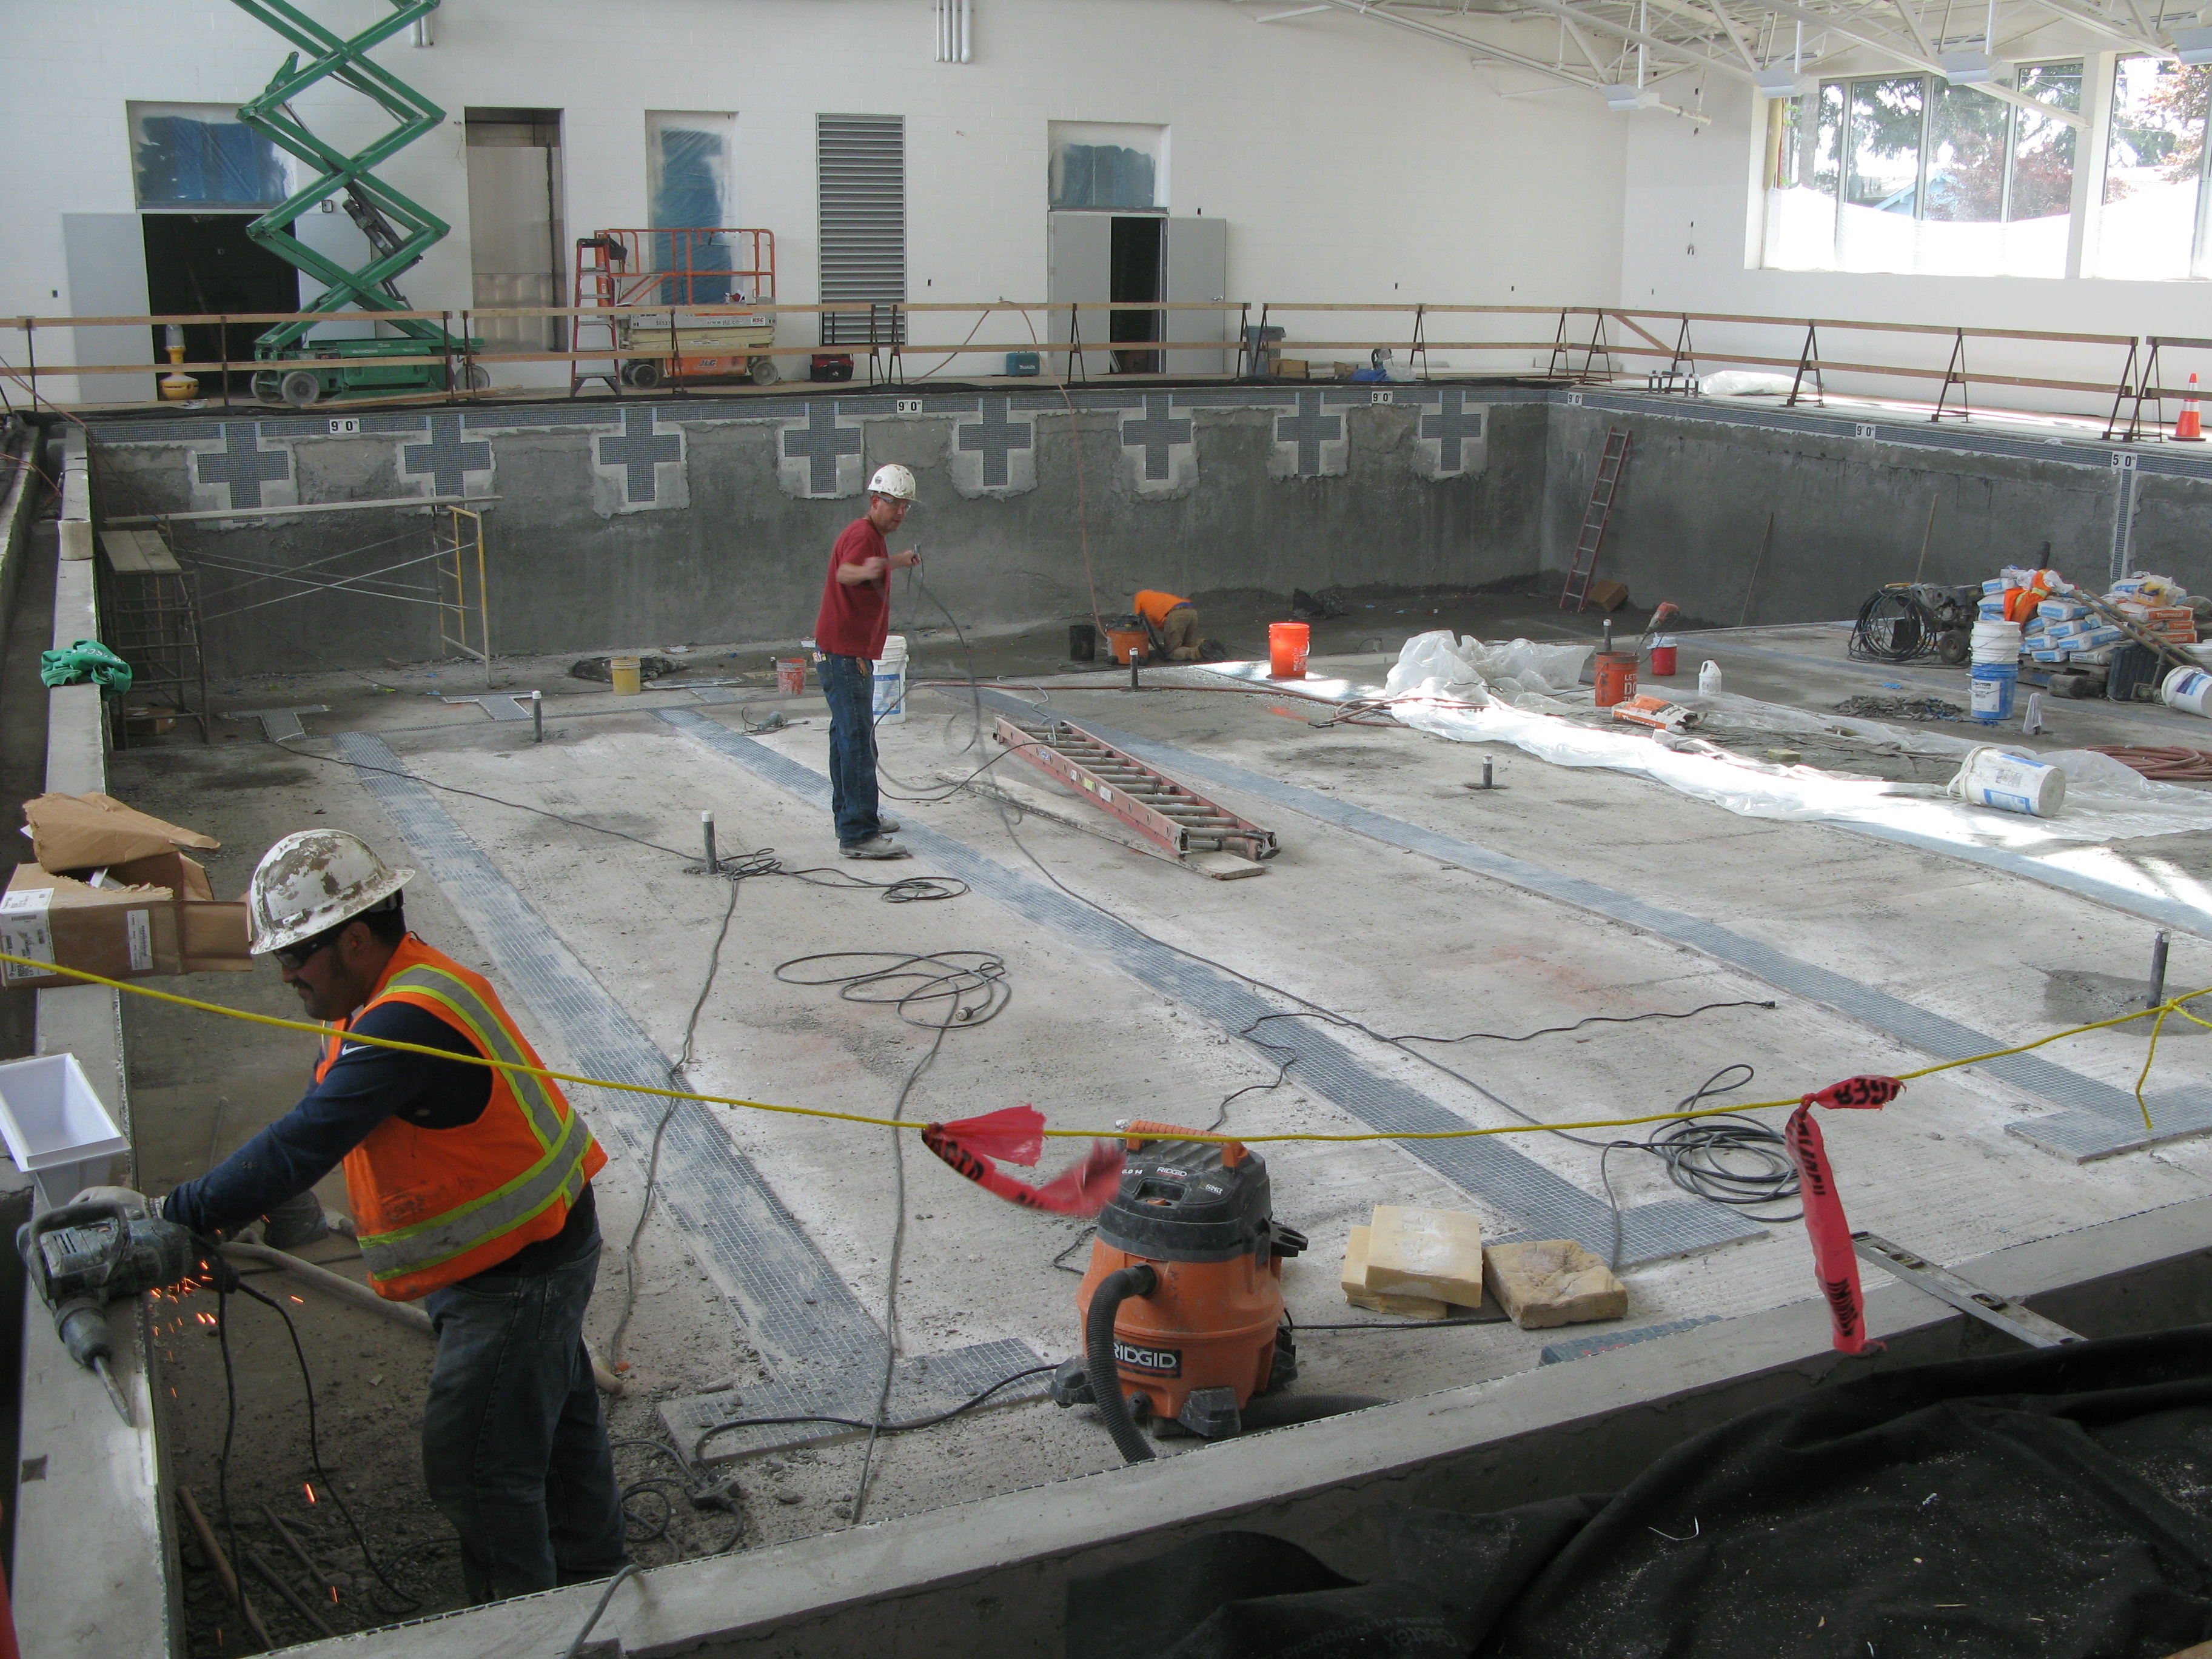 Aquatics center bond construction david douglas school for Pool builders